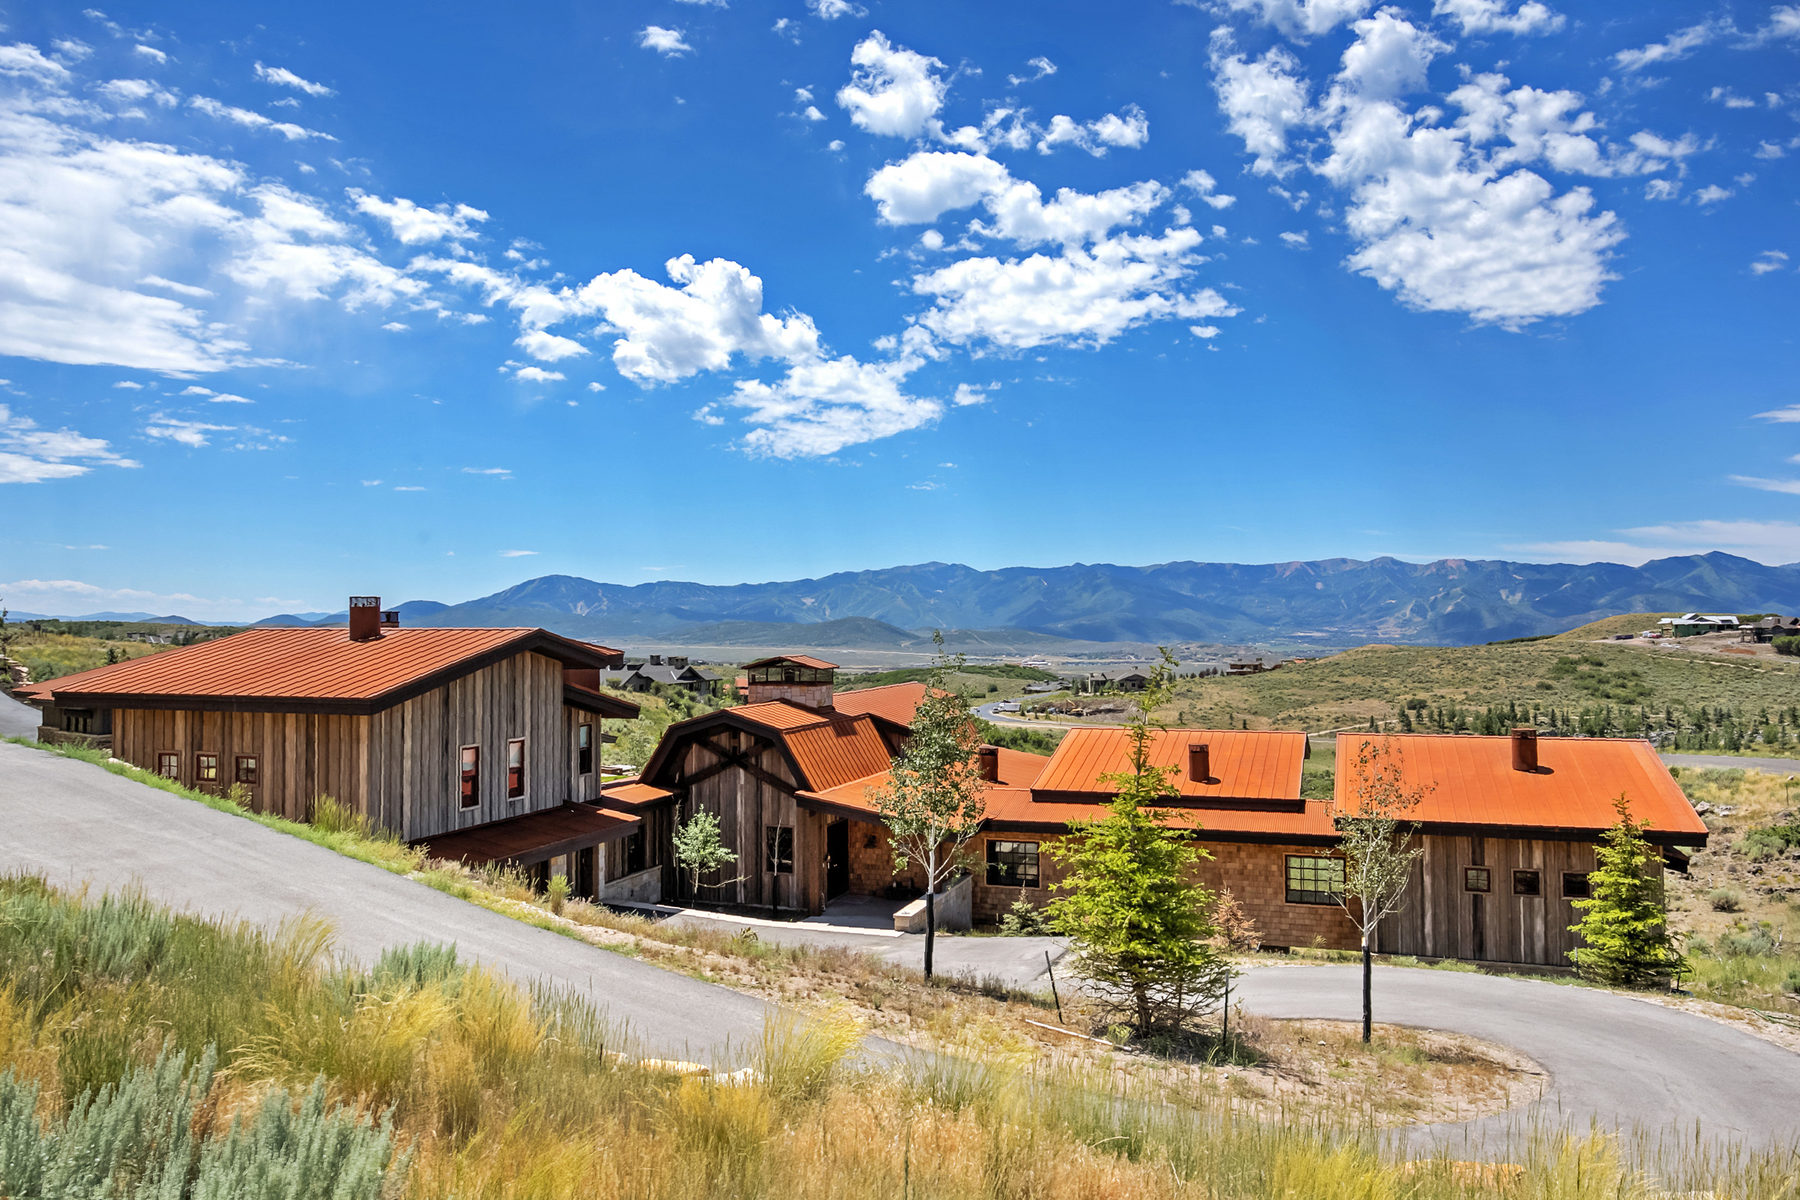 Single Family Home for Sale at Stunning Architecture 3385 Central Pacific Trl Park City, Utah, 84098 United States